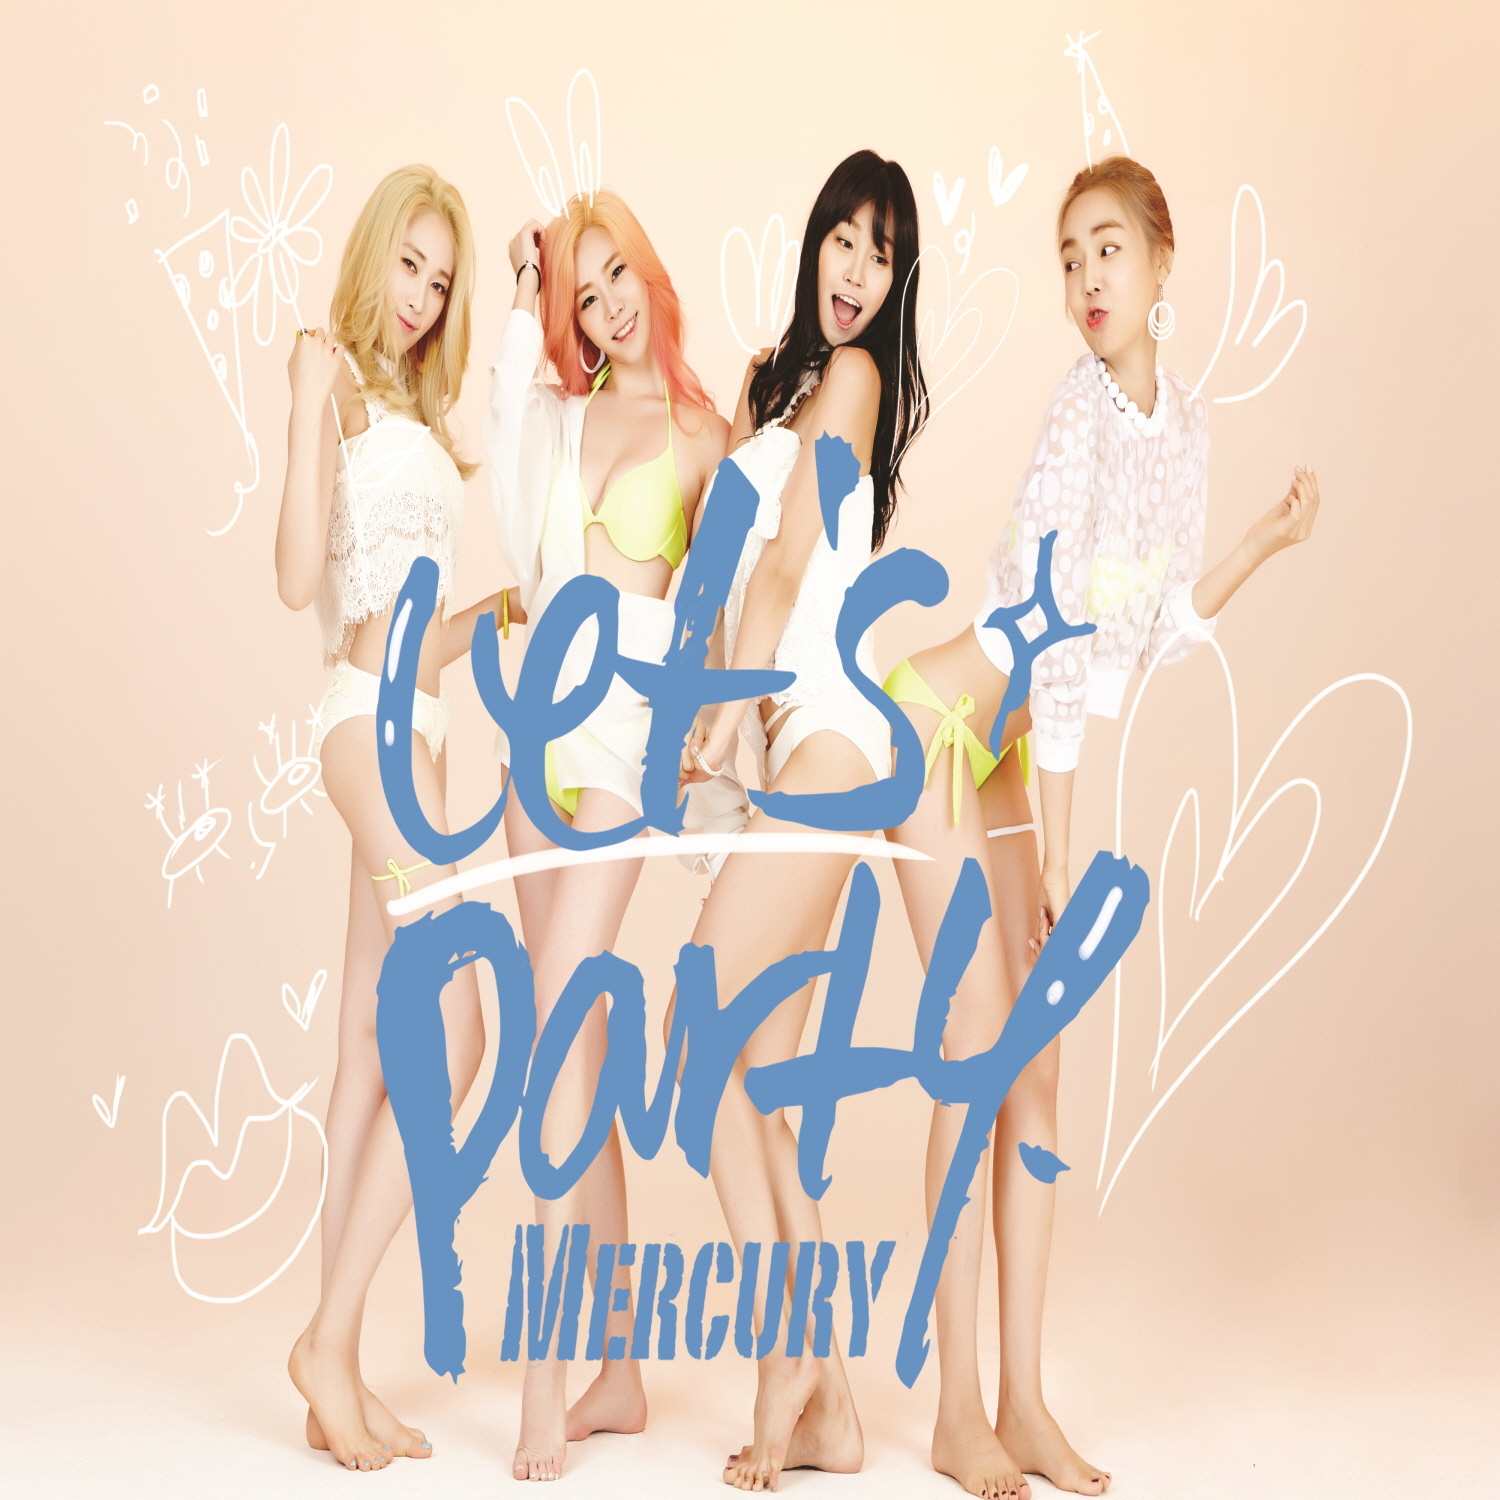 20171229.1423.13 Mercury - Let's Party cover.jpg